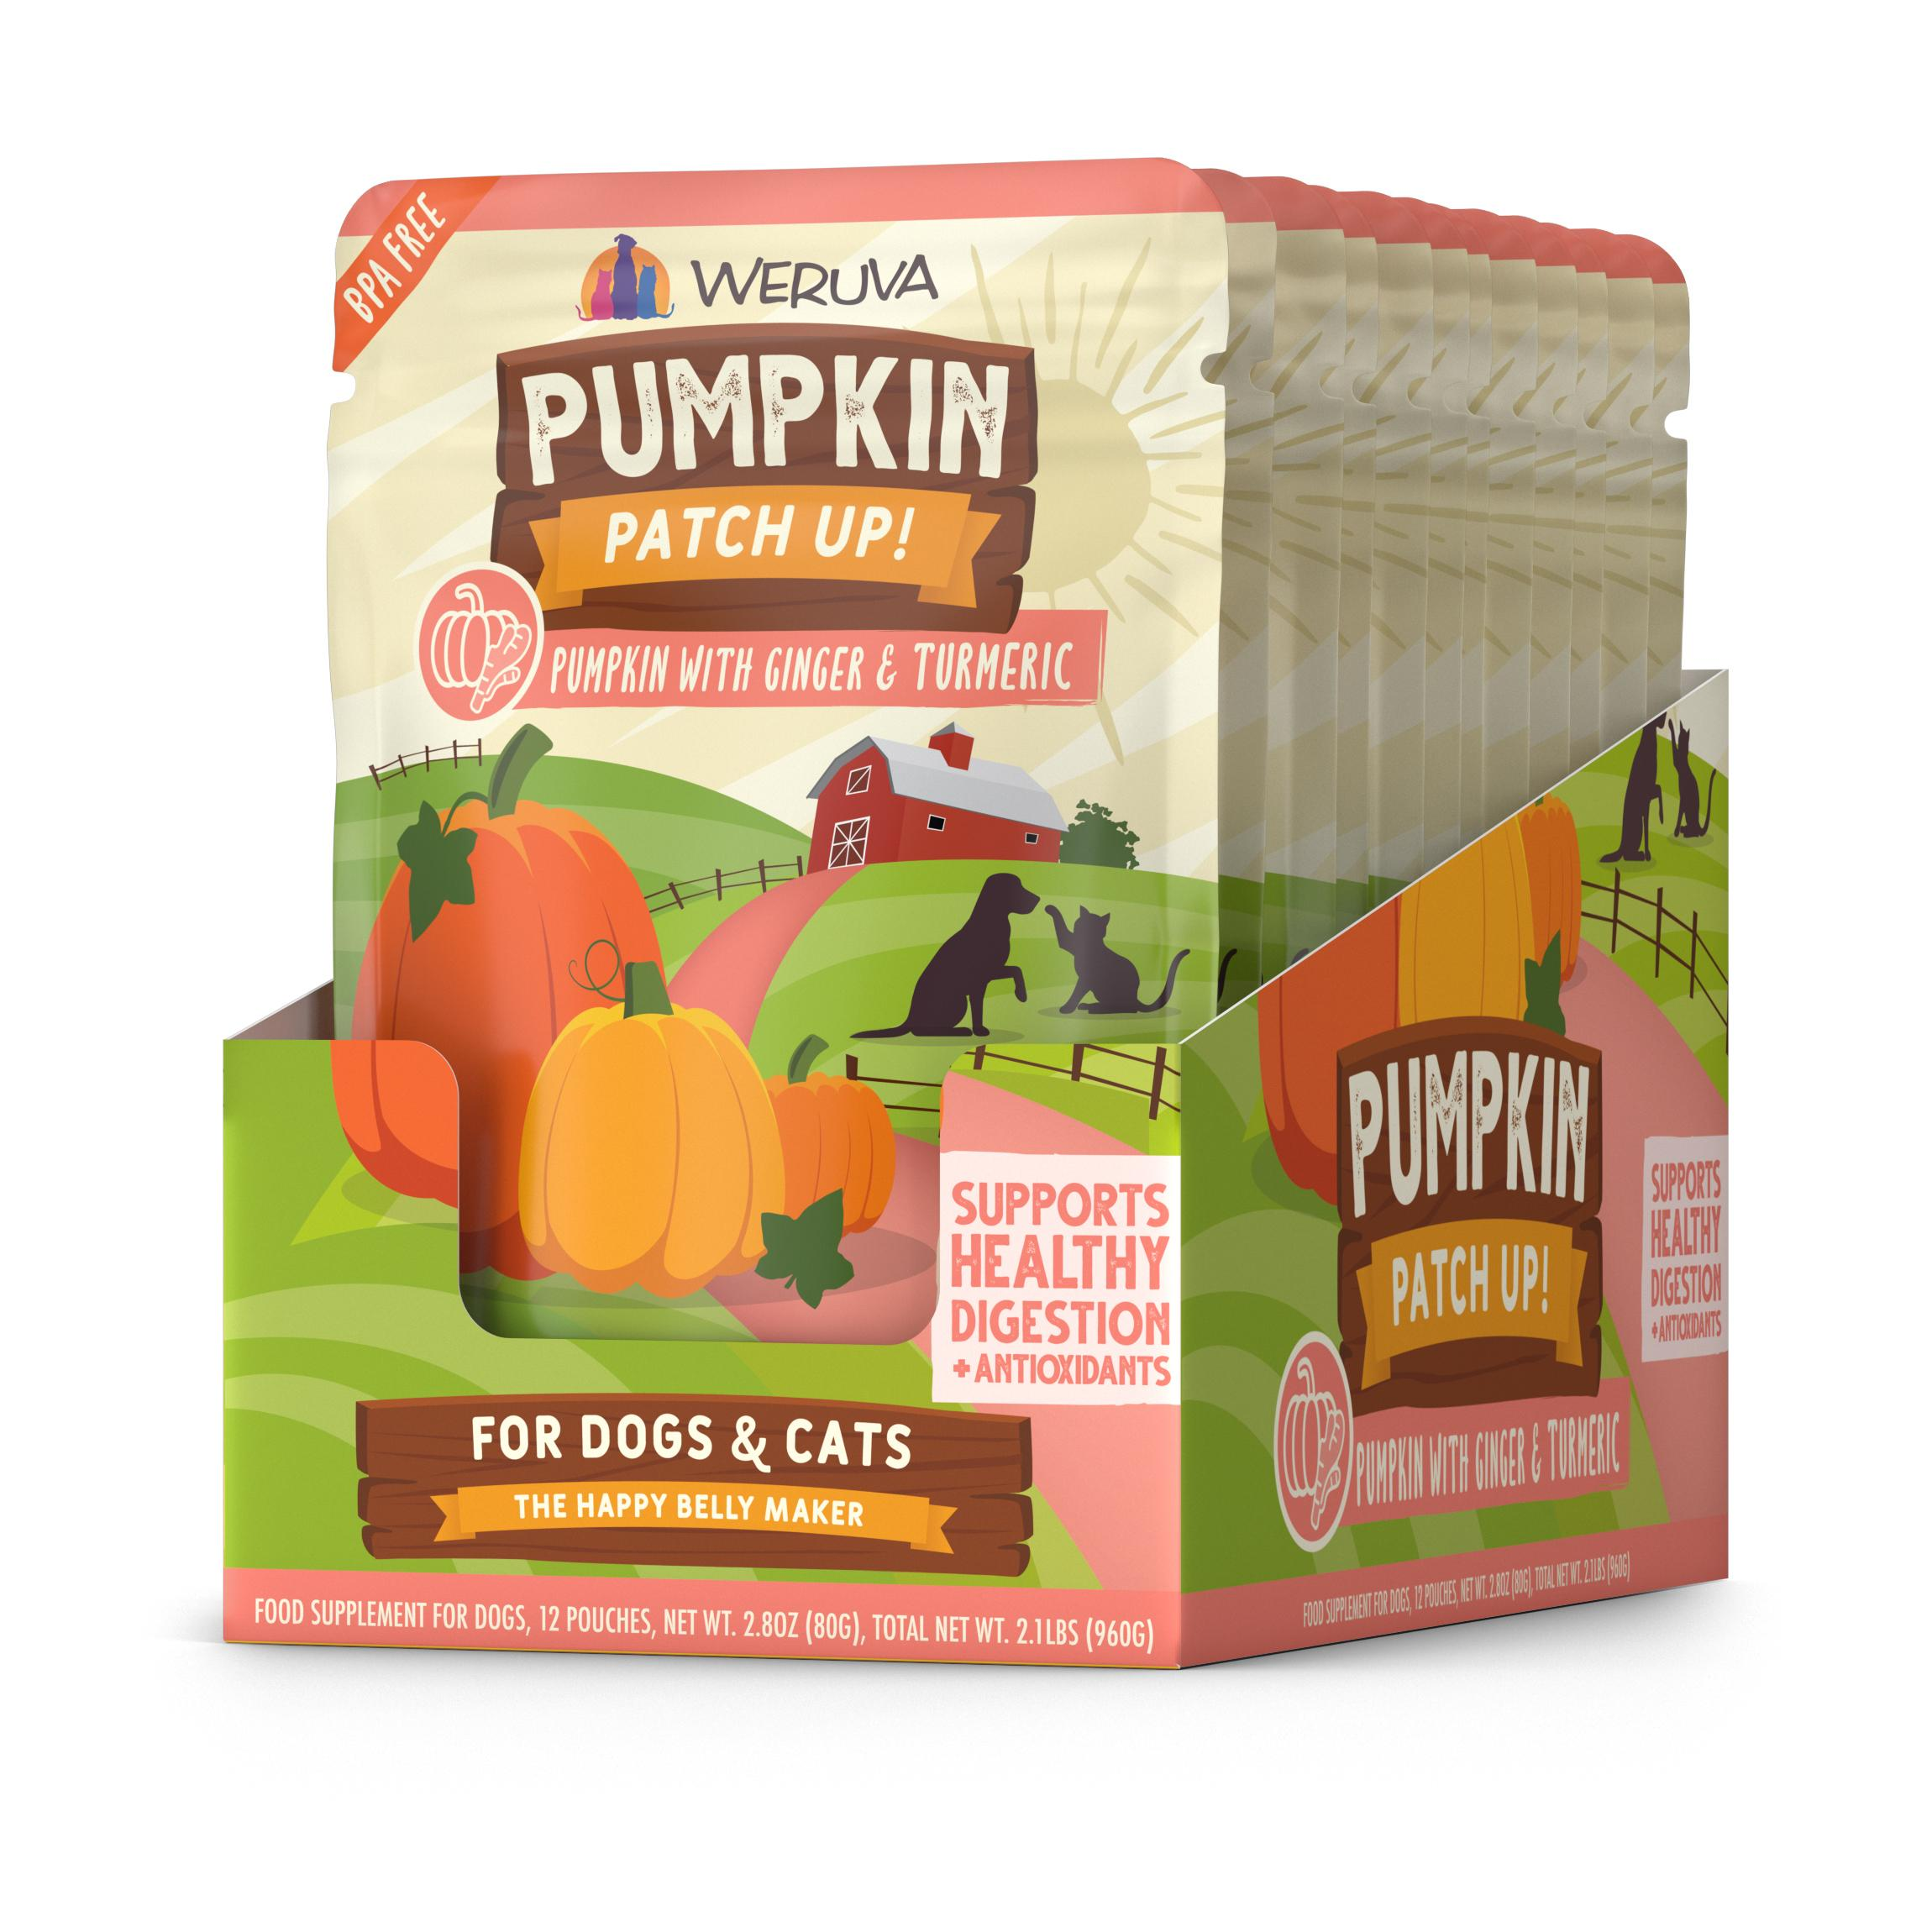 Weruva Grain-Free Pumpkin Patch UP with Ginger & Turmeric Wet Food, 2.80-oz, case of 12